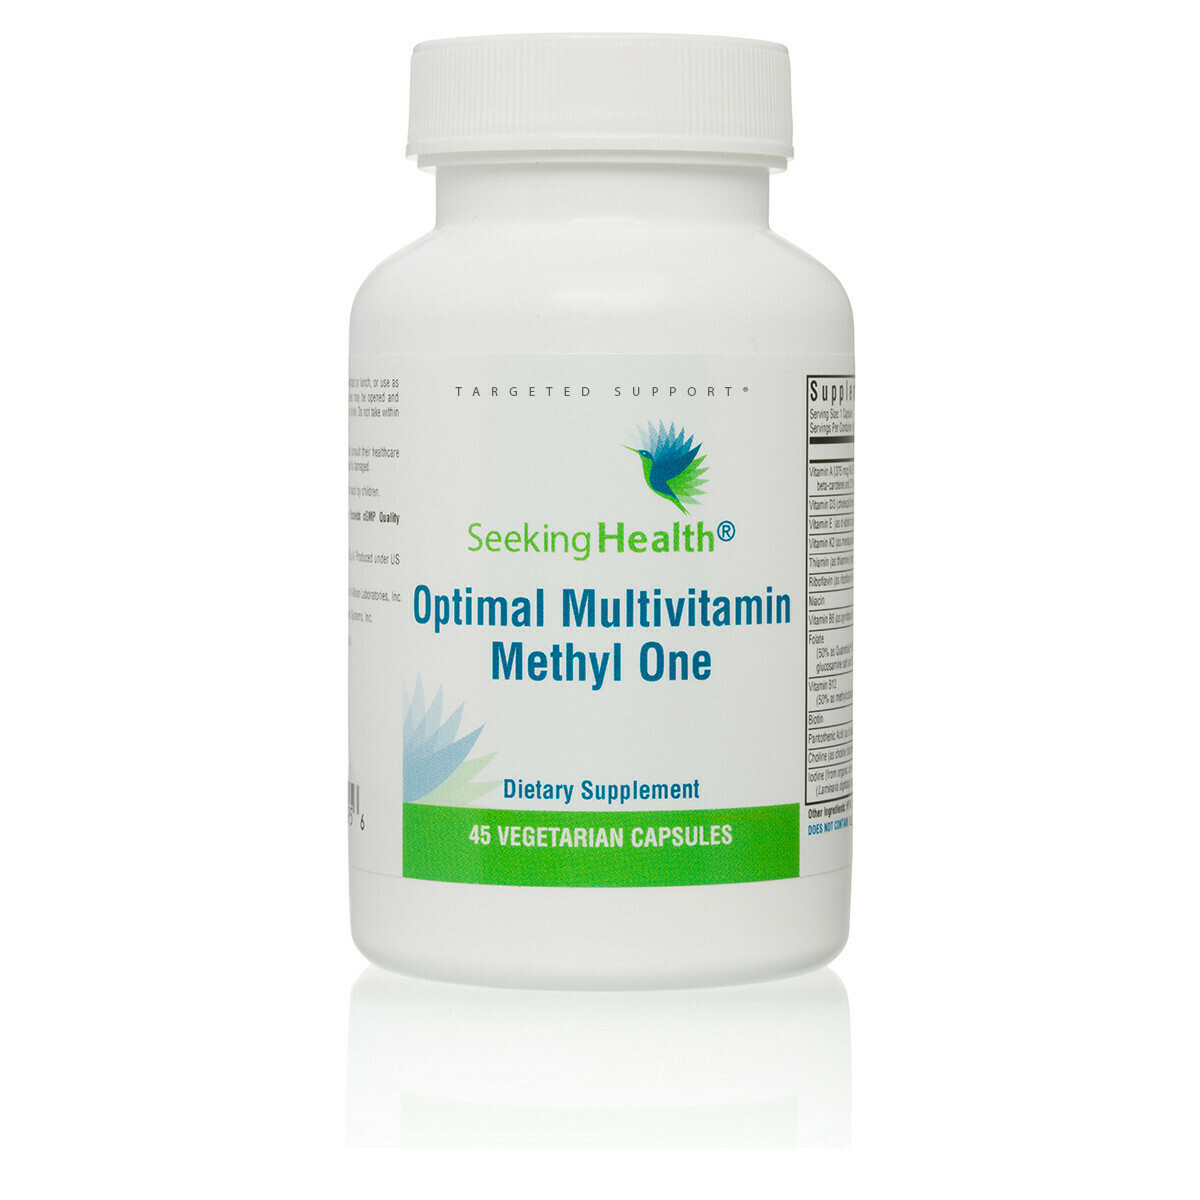 OPTIMAL MULTIVITAMIN METHYL ONE - 45 VEGETARIAN CAPSULES Seeking Health